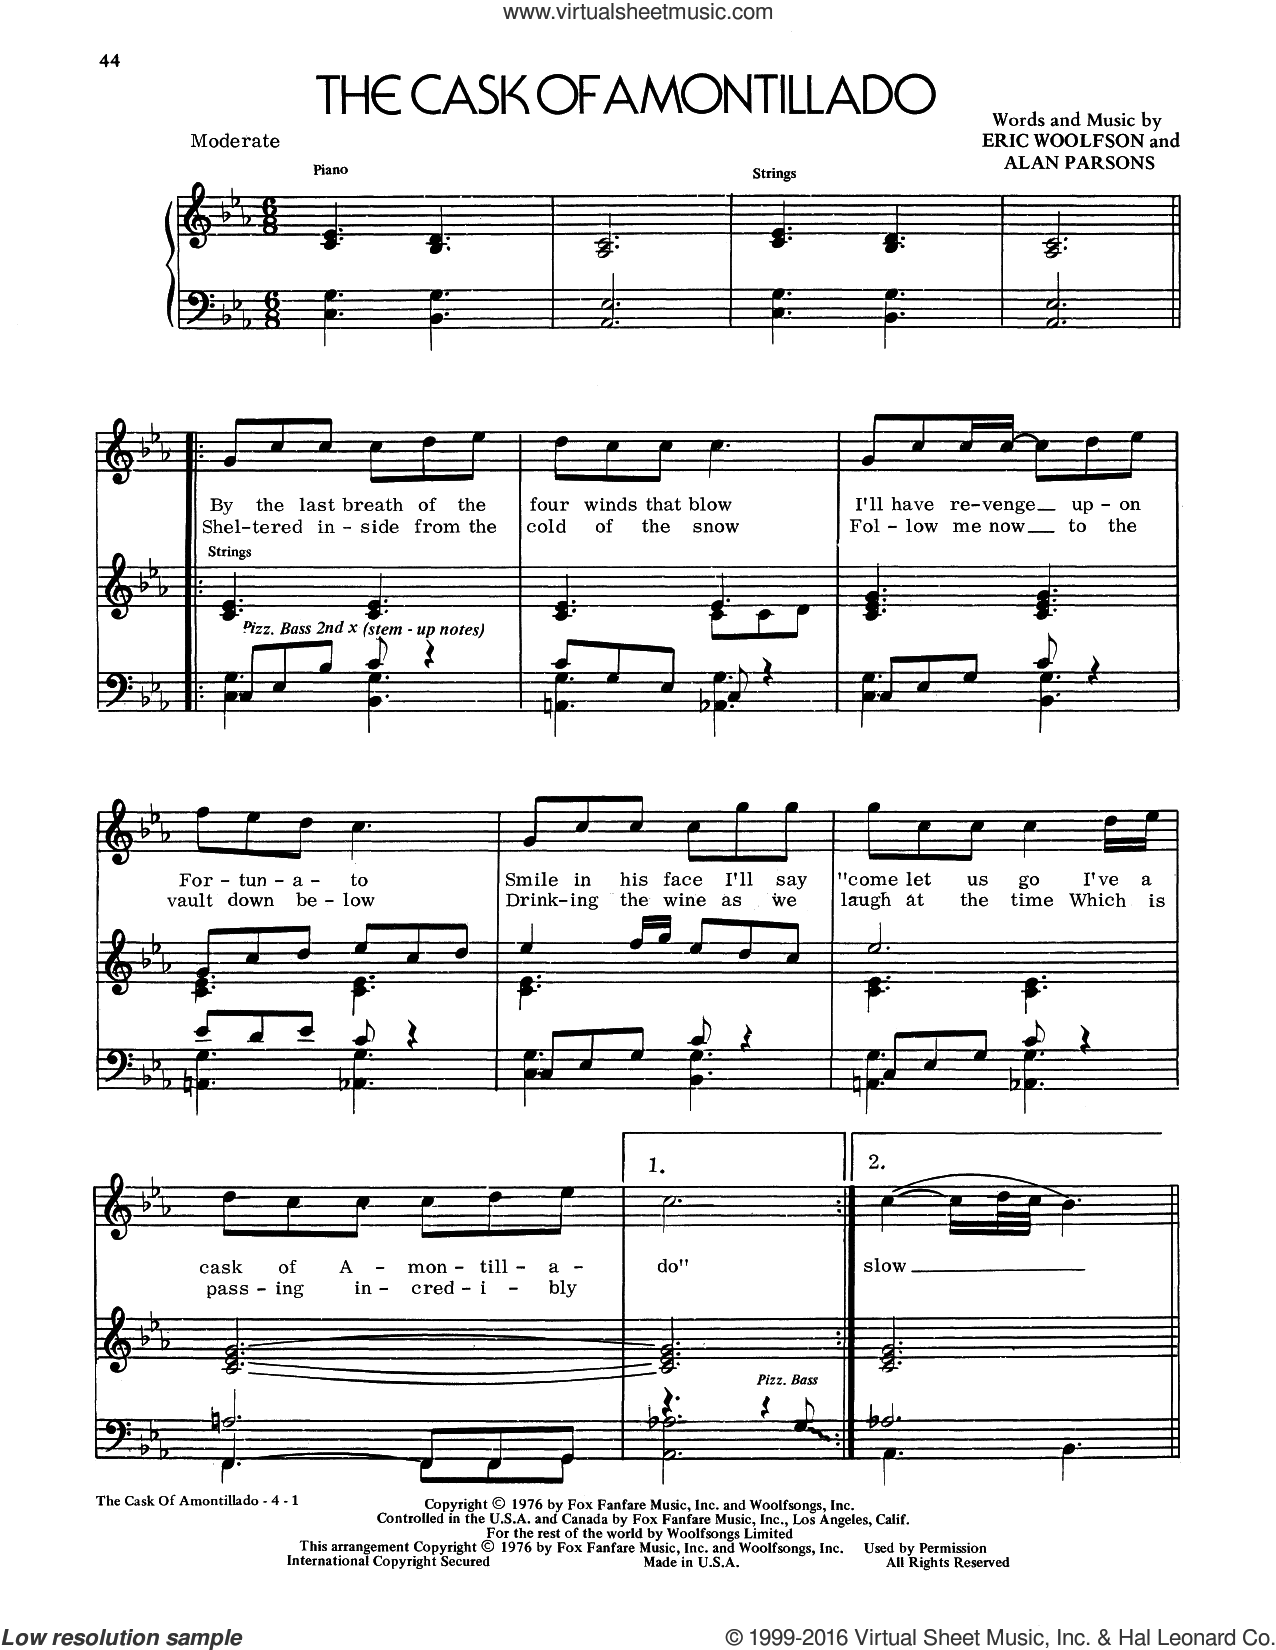 The Cask Of Amontillado sheet music for voice and piano by Alan Parsons Project, Alan Parsons and Eric Woolfson, intermediate skill level